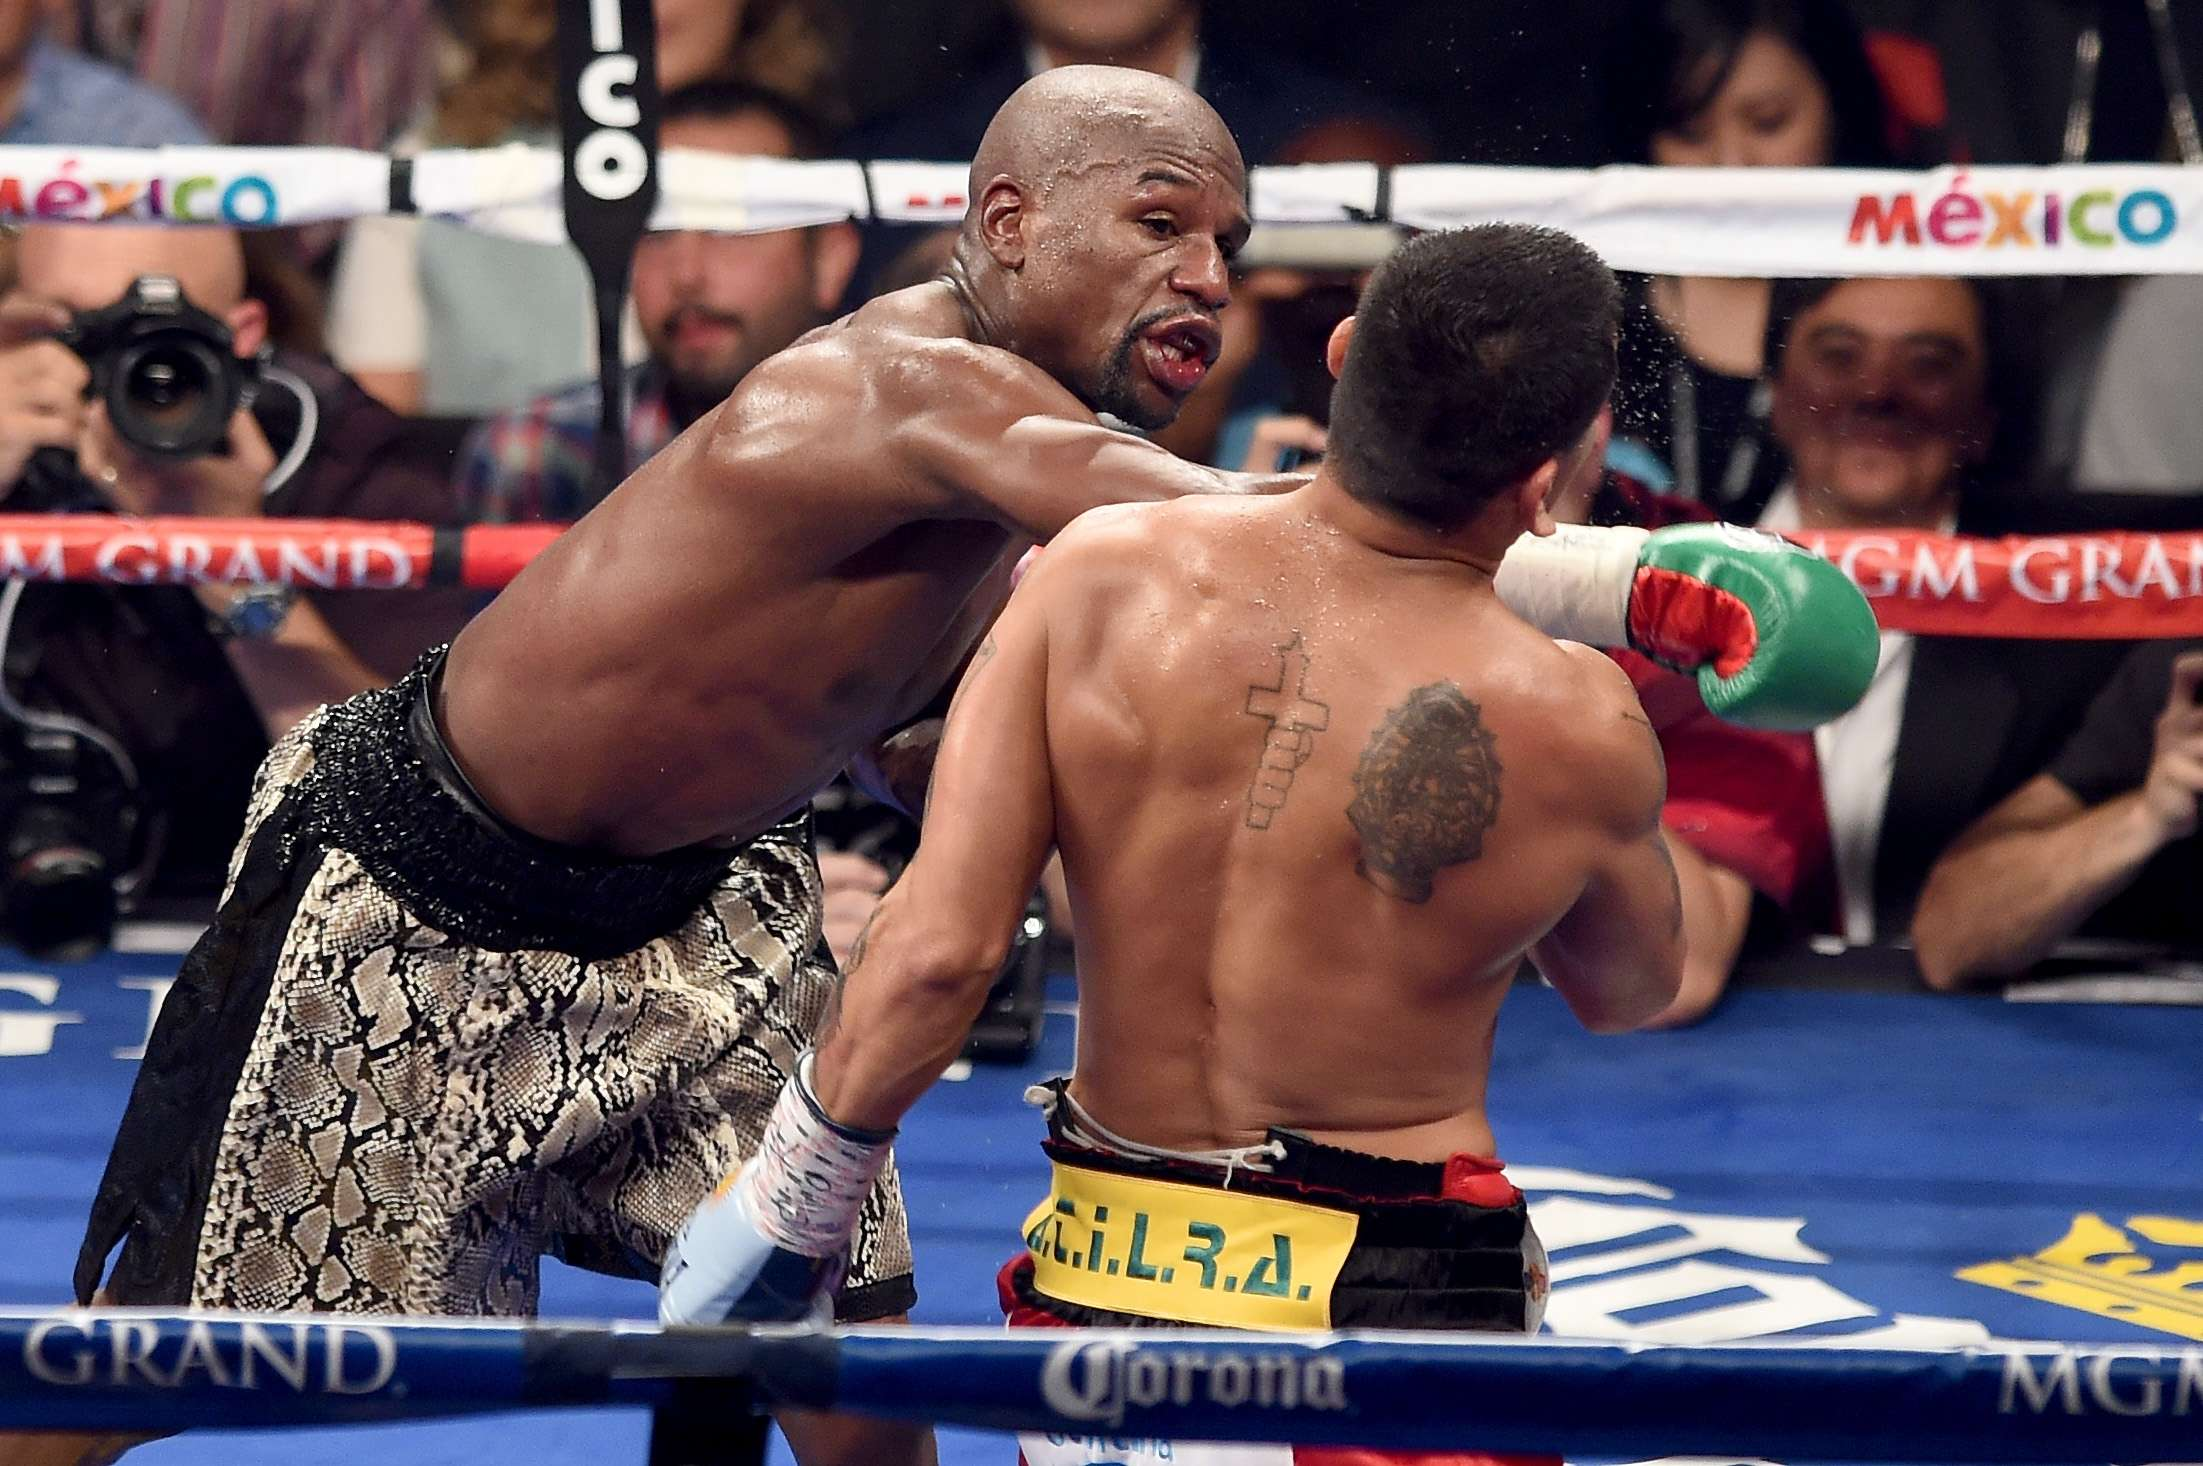 Un video puede causar nuevos problemas al boxeador Floyd Mayweather Jr. Foto: Getty Images